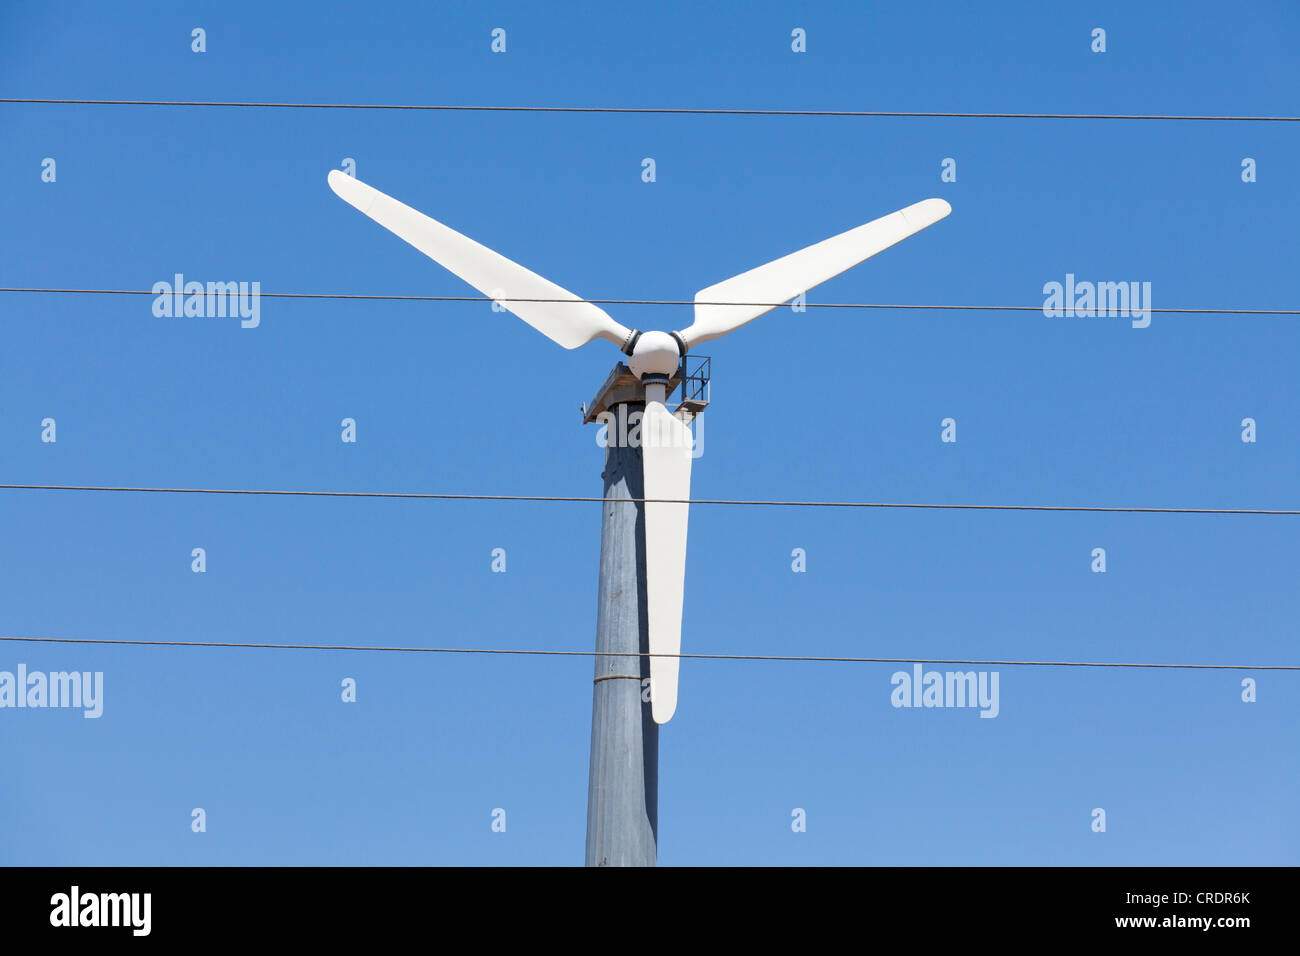 Wind turbine and electric wires - Stock Image